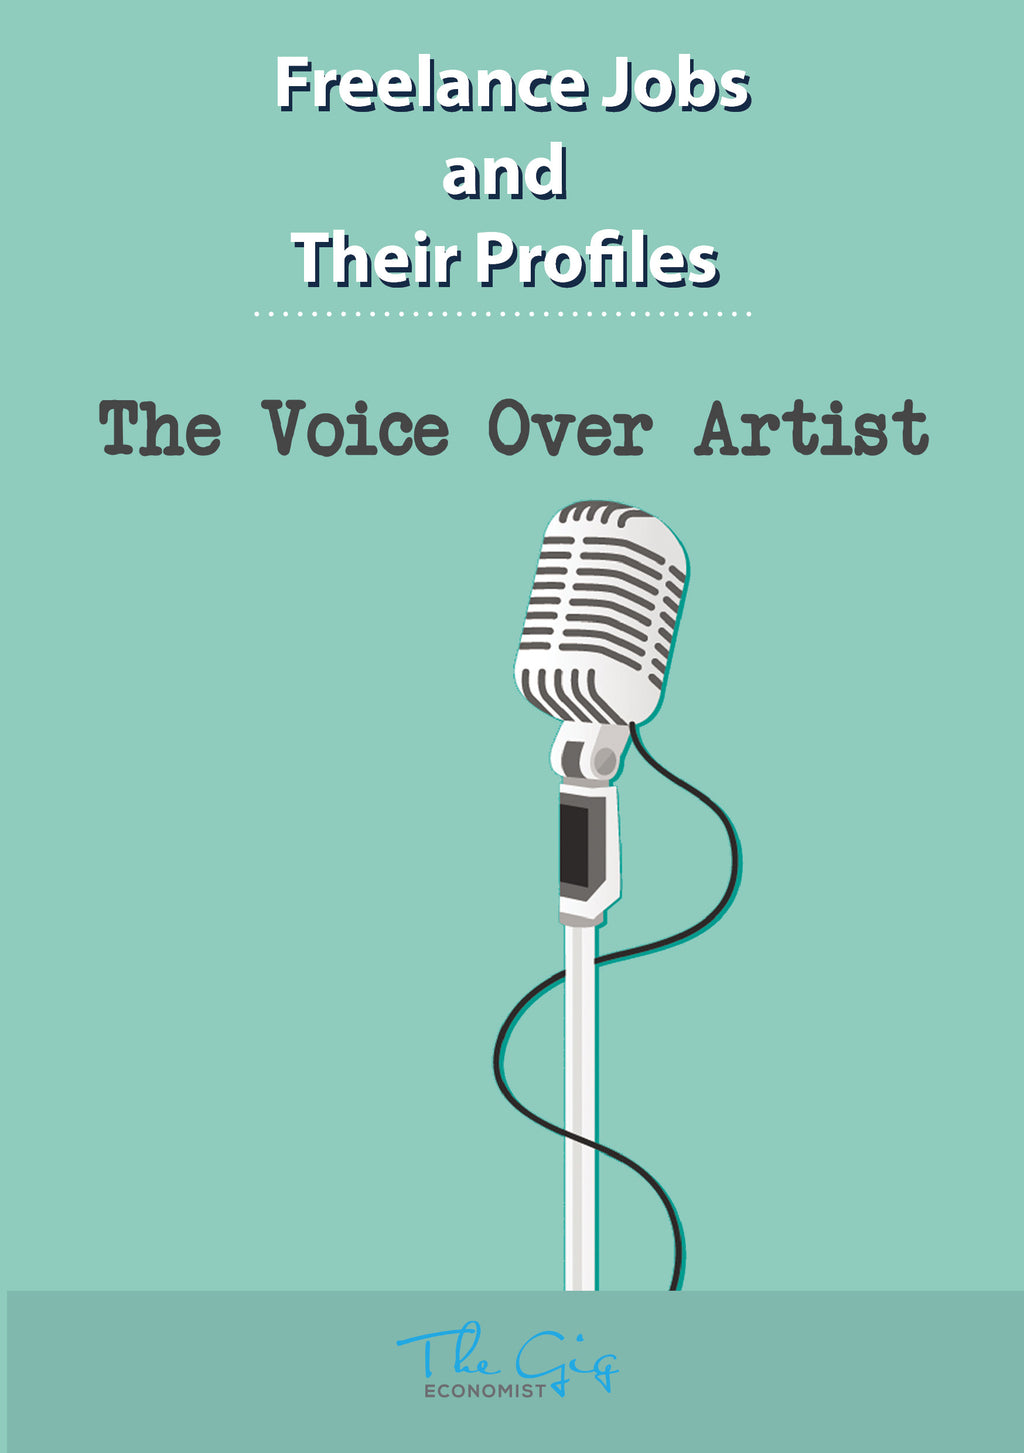 Freelance Voice Over Artist Job Profile | The Gig Economist